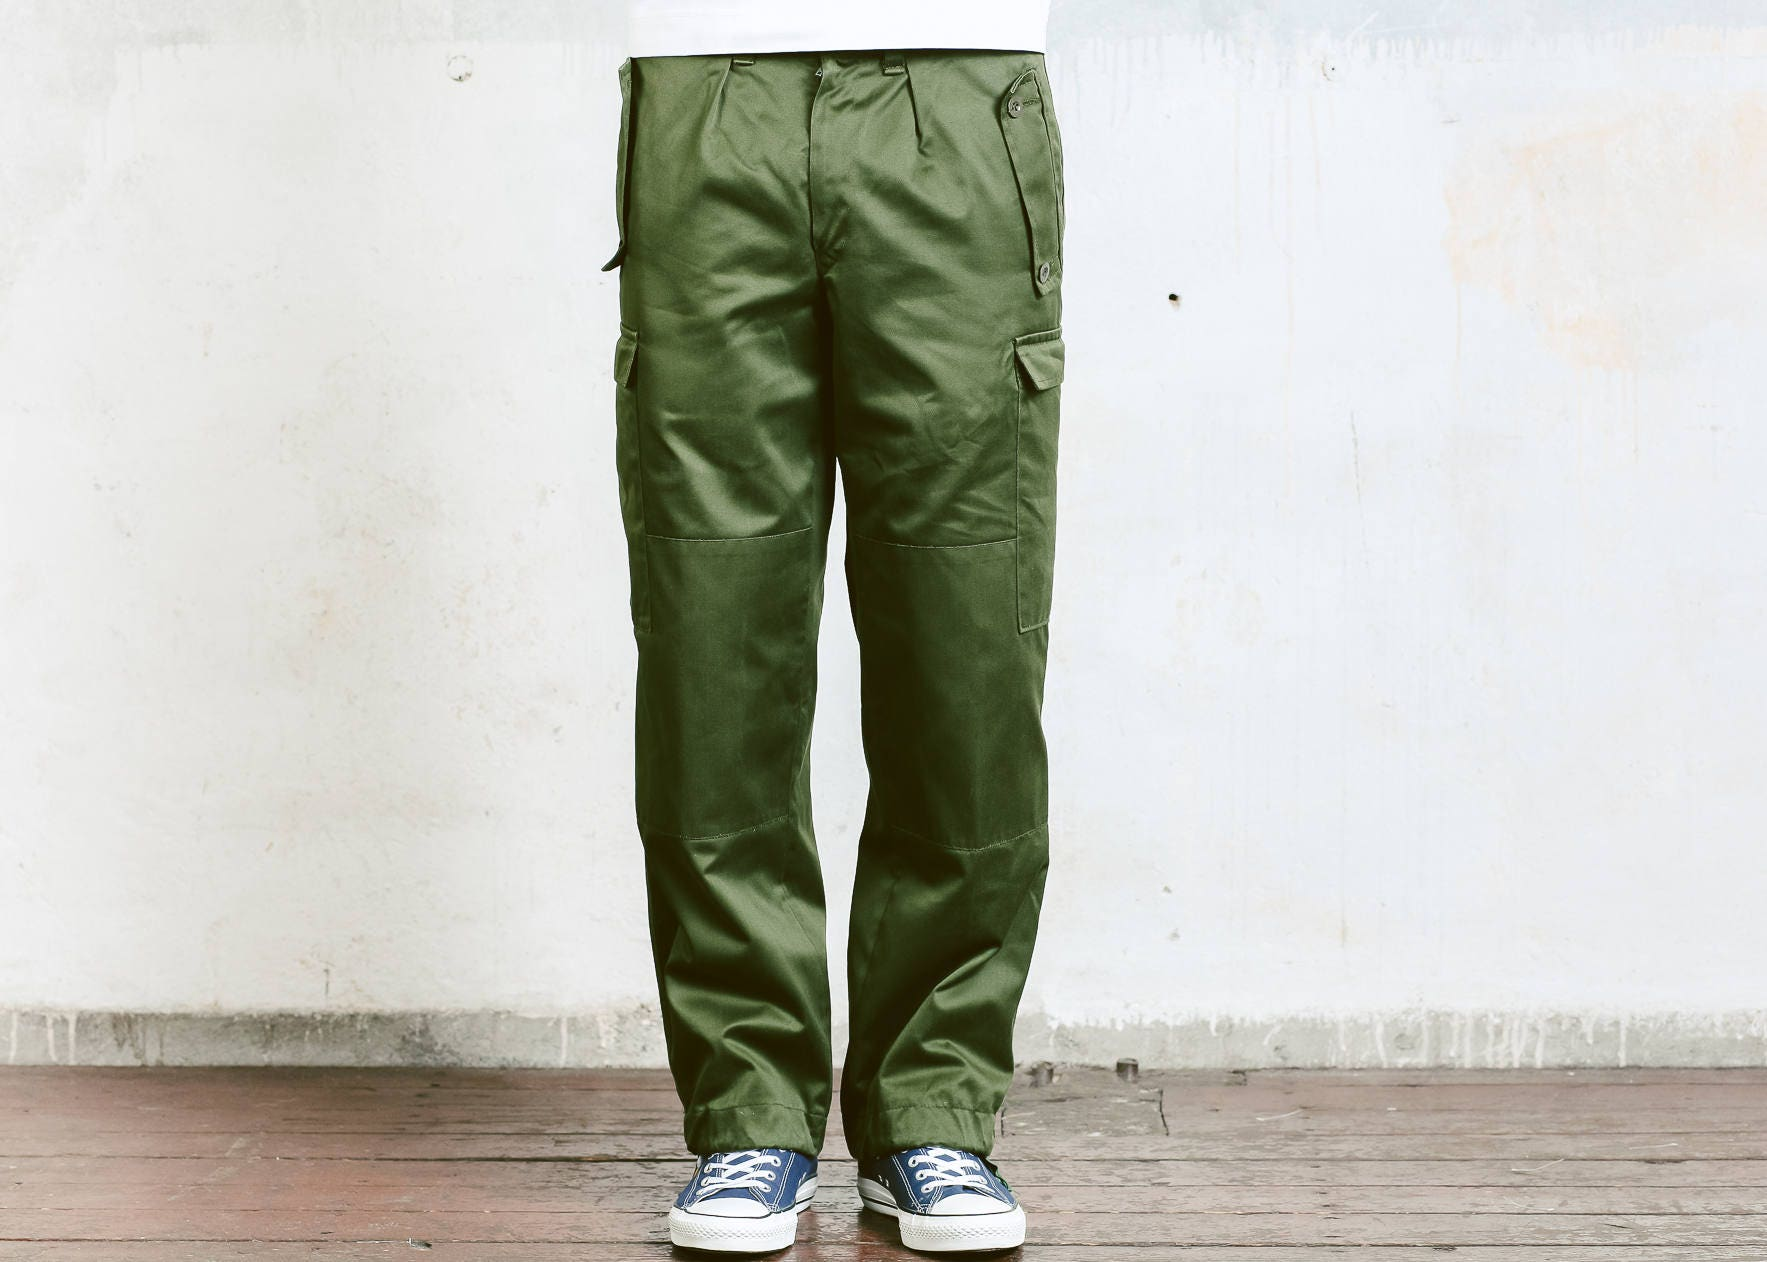 Mens Utility Pants Vintage Military Style Work Trousers Khaki Pants